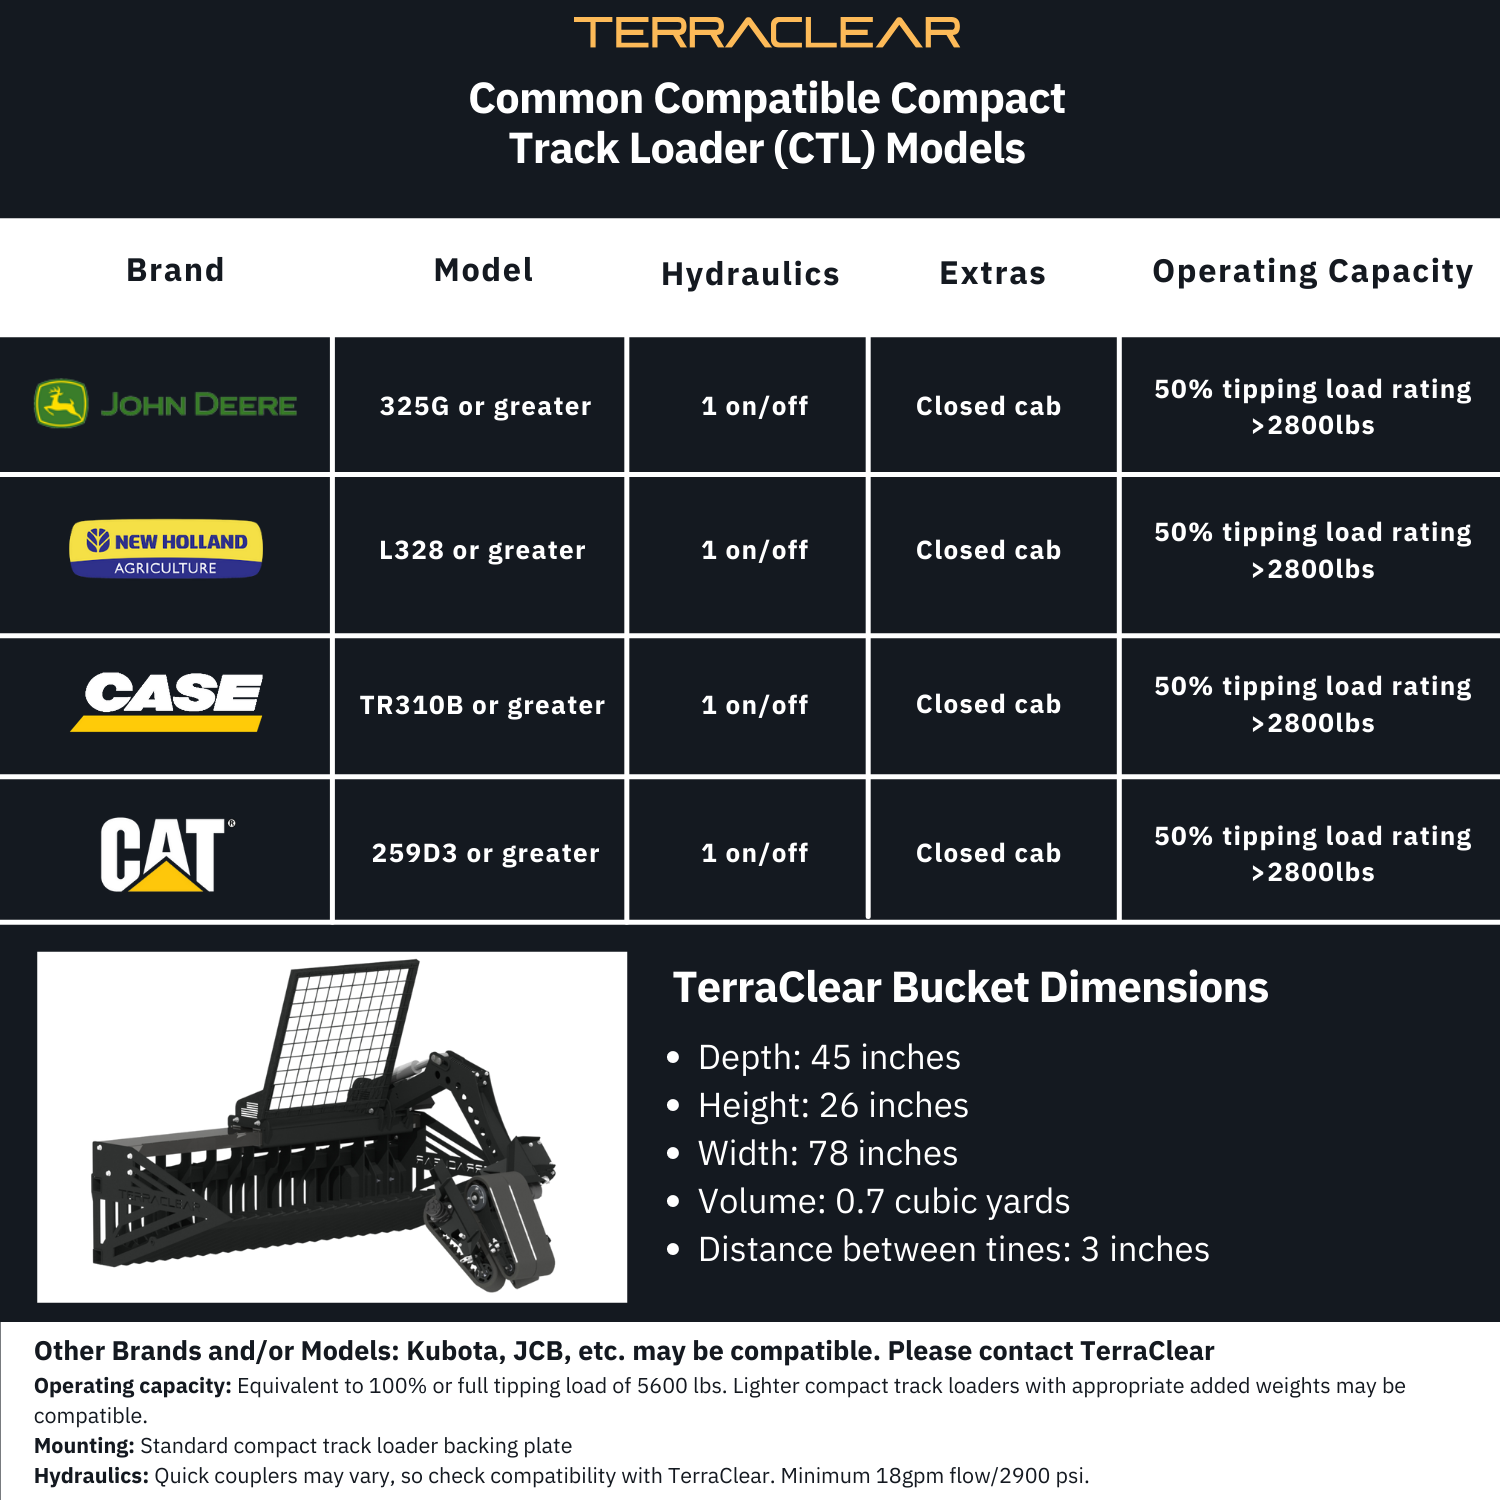 TerraClear - Common Compatible Compact Track Loader (CTL) Models